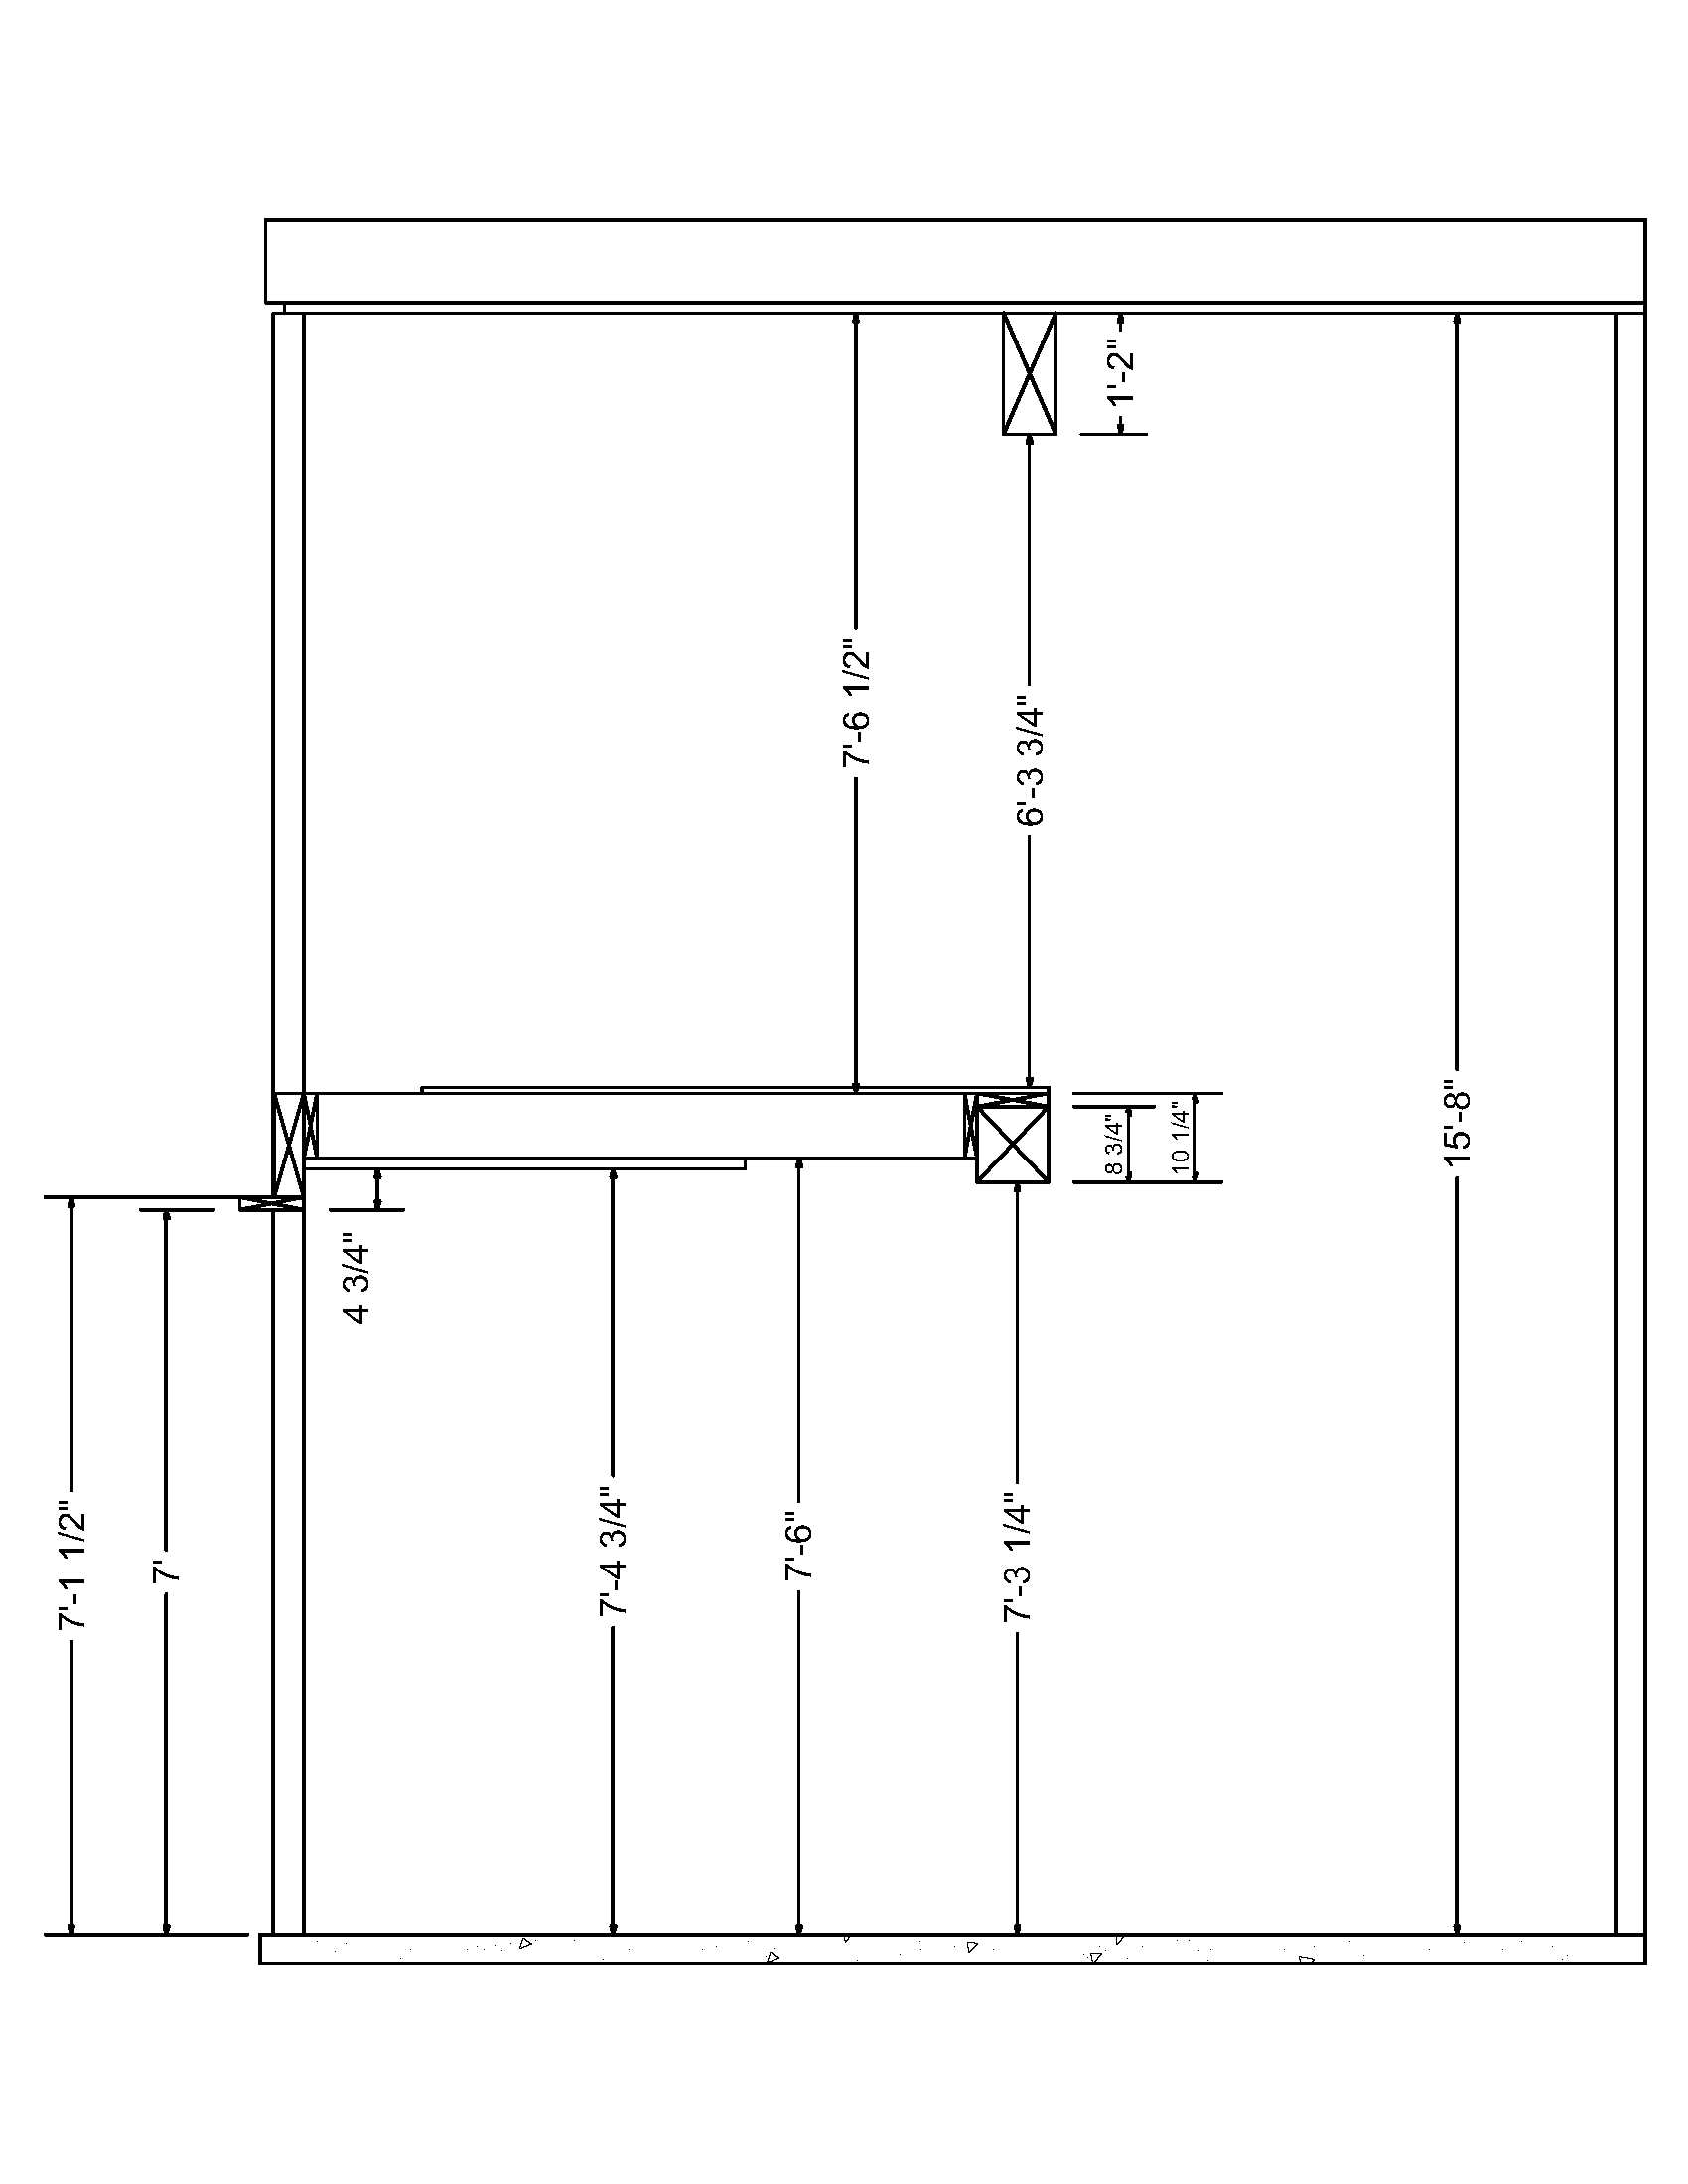 Minimum Ceiling Height For 7 Garage Door Windows Siding And